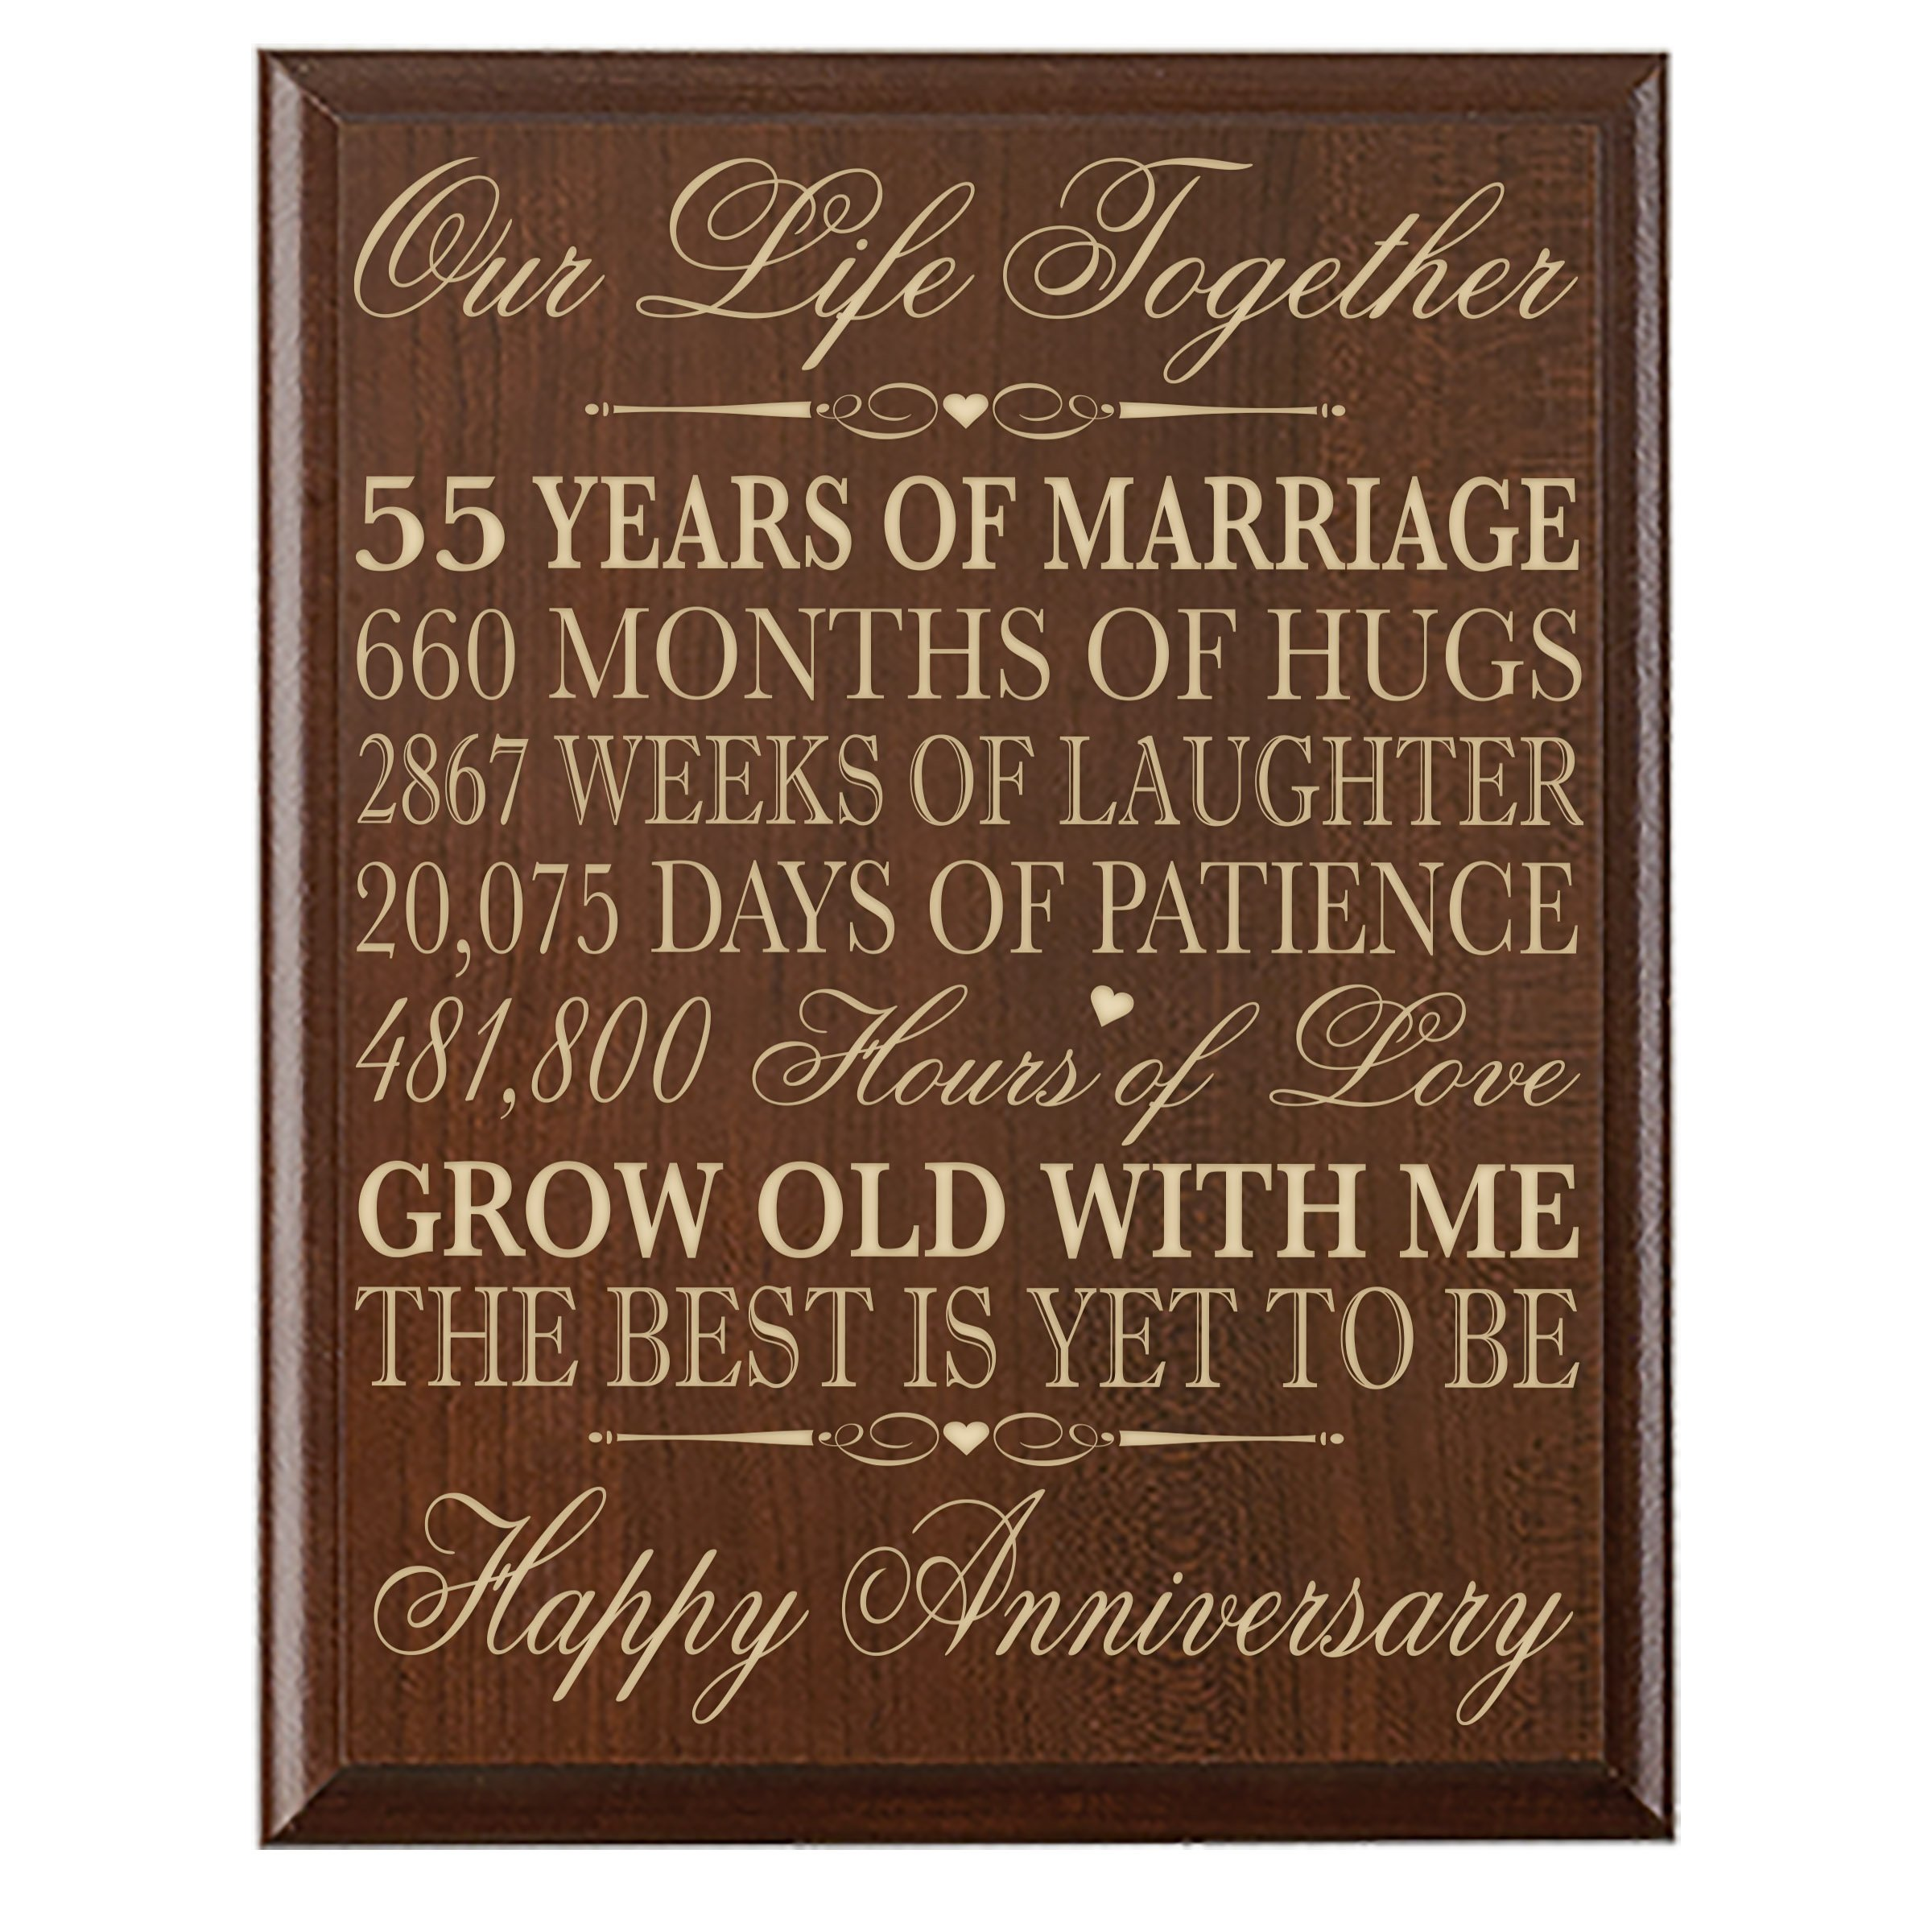 55th Wedding Anniversary Wall Plaque Gifts for Couple, 55th Anniversary Gifts for Her,55th Wedding Anniversary Gifts for Him Wall Plaque Special Dates to Remember By Dayspring Milestones (Cherry)